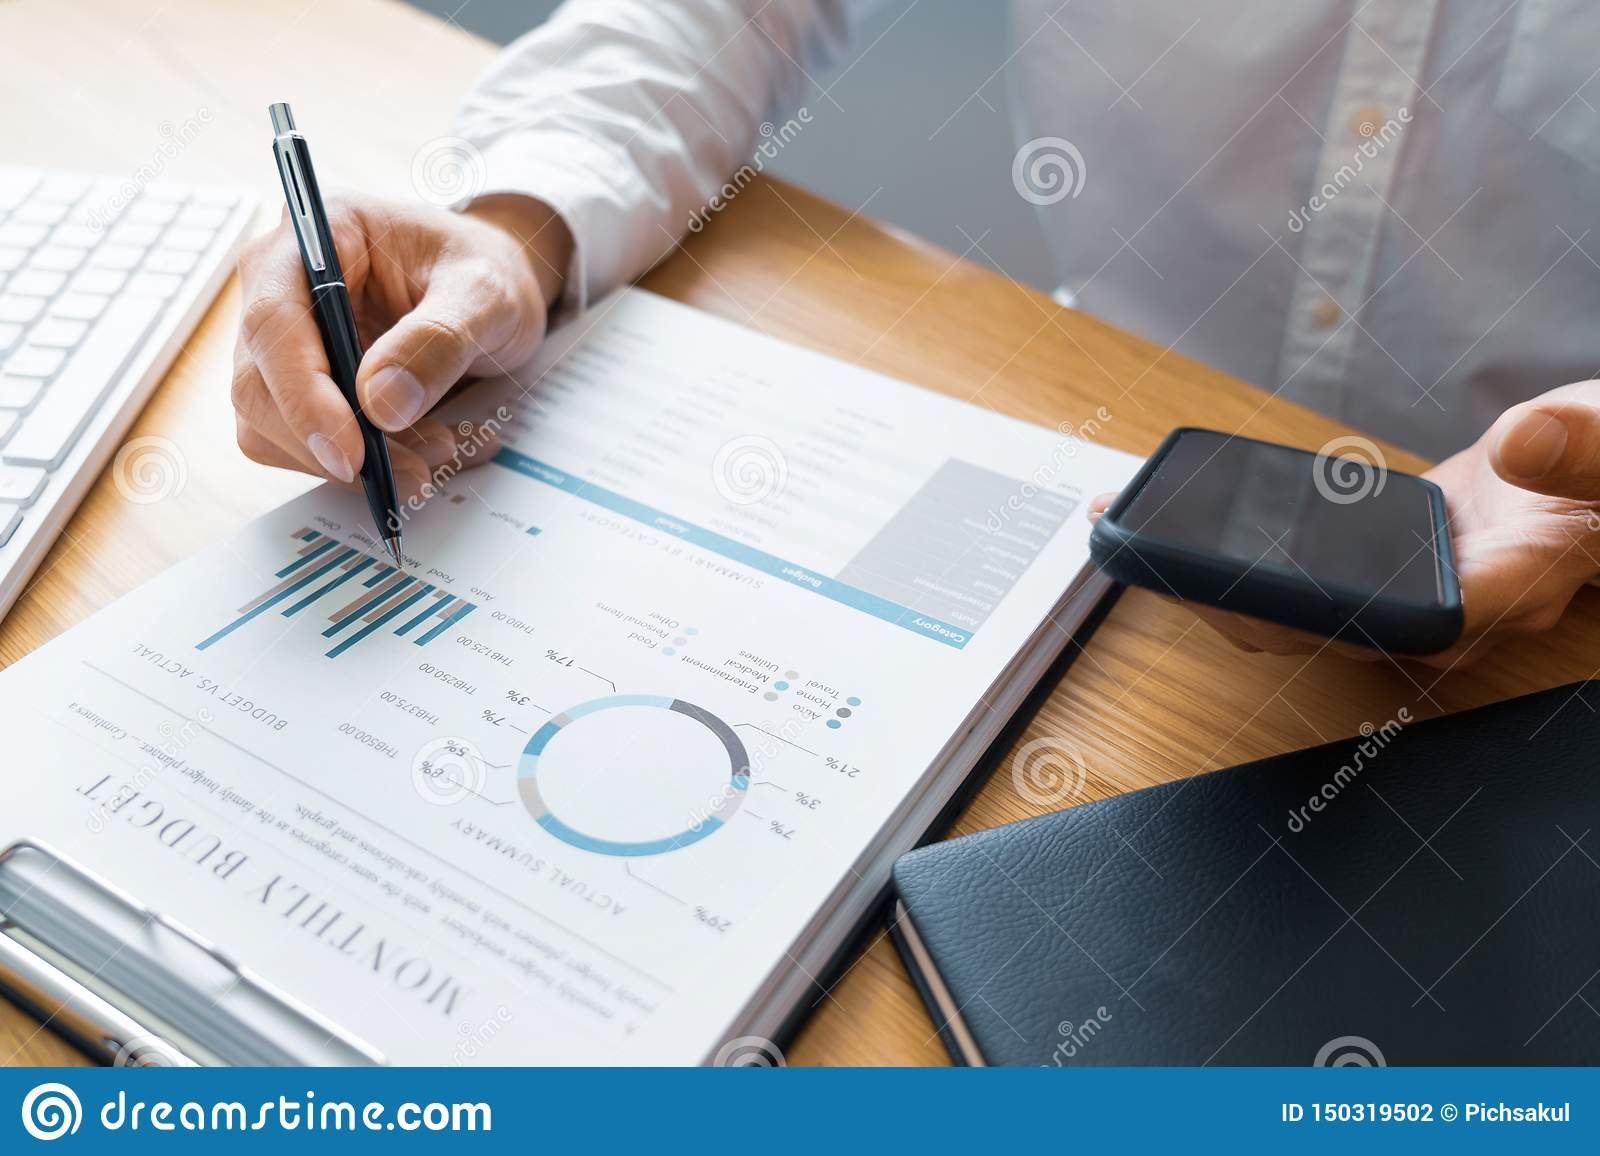 Work process concept, Business man using mobile phone writing in agenda consulting on a desk at home or office